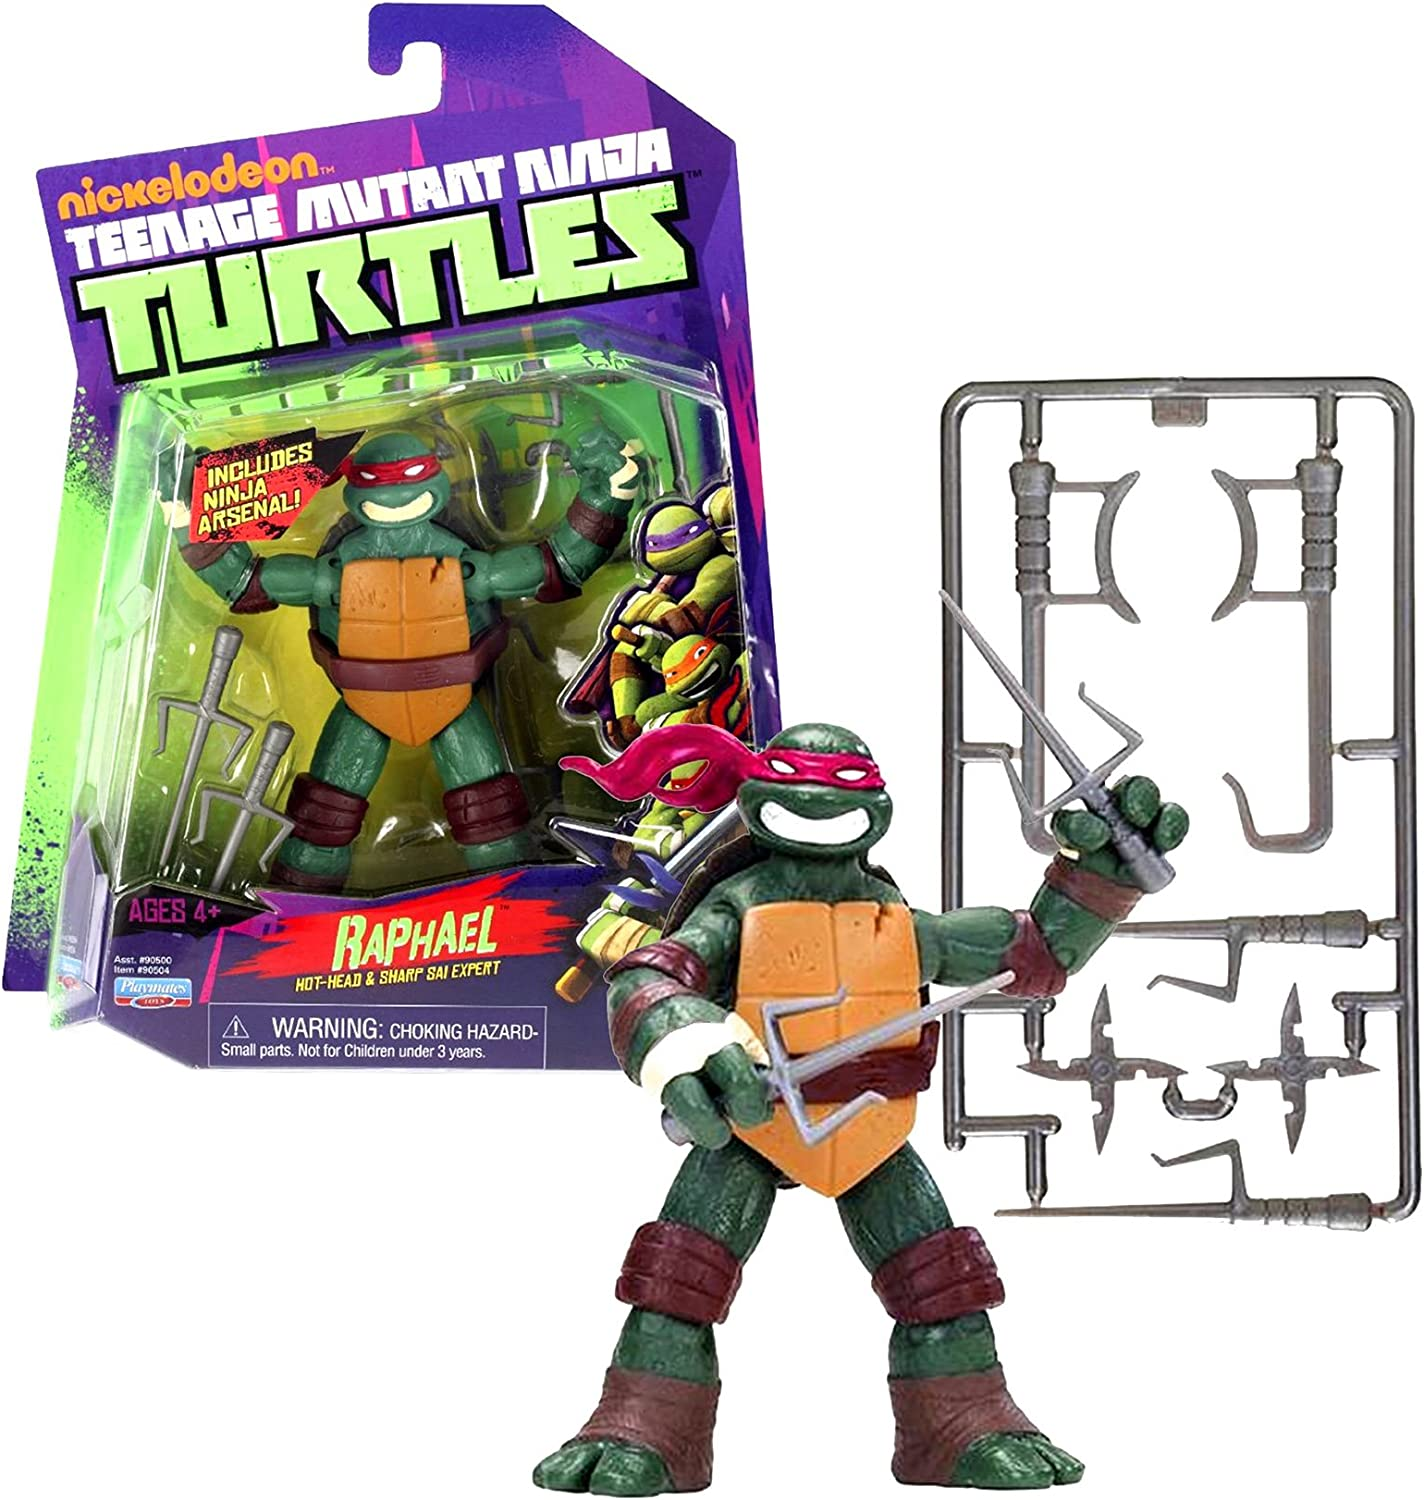 Playmates Year 2012 Nickelodeon Teenage Mutant Ninja Turtles 4 Inch Tall Action Figure - Hot Head and Sharp Sai Expert RAPHAEL with 2 Pair of Sais, 1 Pair of Hook Sword and 2 Shuriken Stars